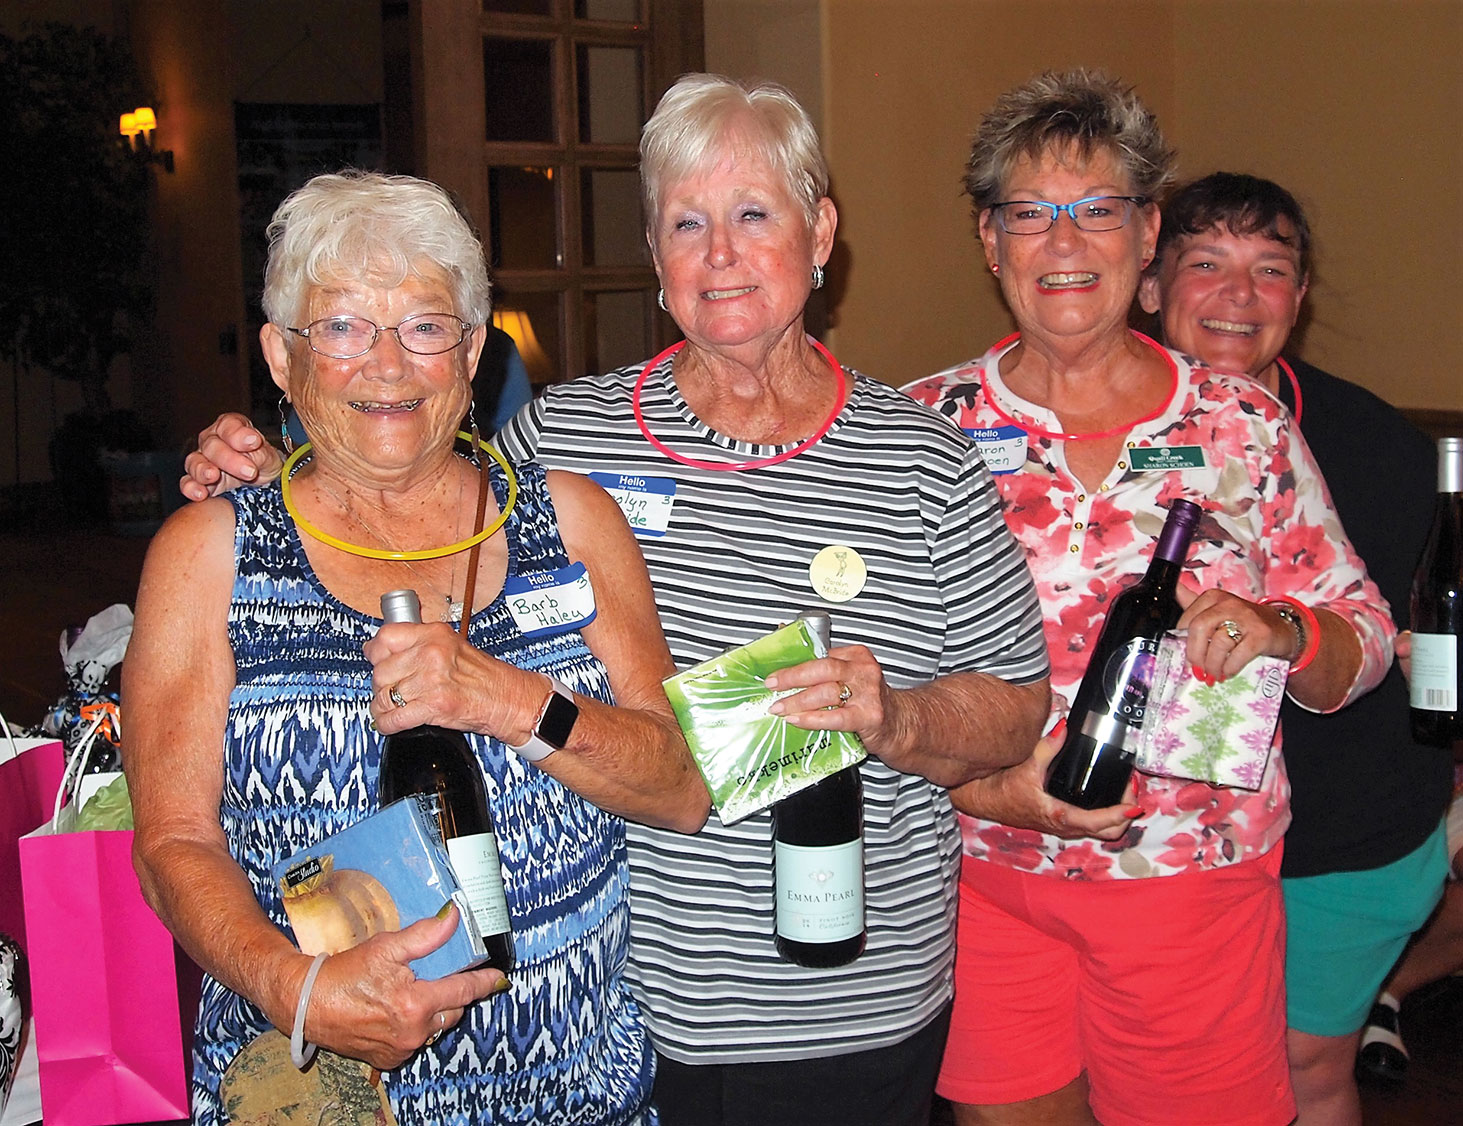 Left to right: Barb Haley, Carolyn McBride, Sharon Schoen and Kim Schoen were on the second place team; photo by Sylvia Butler.